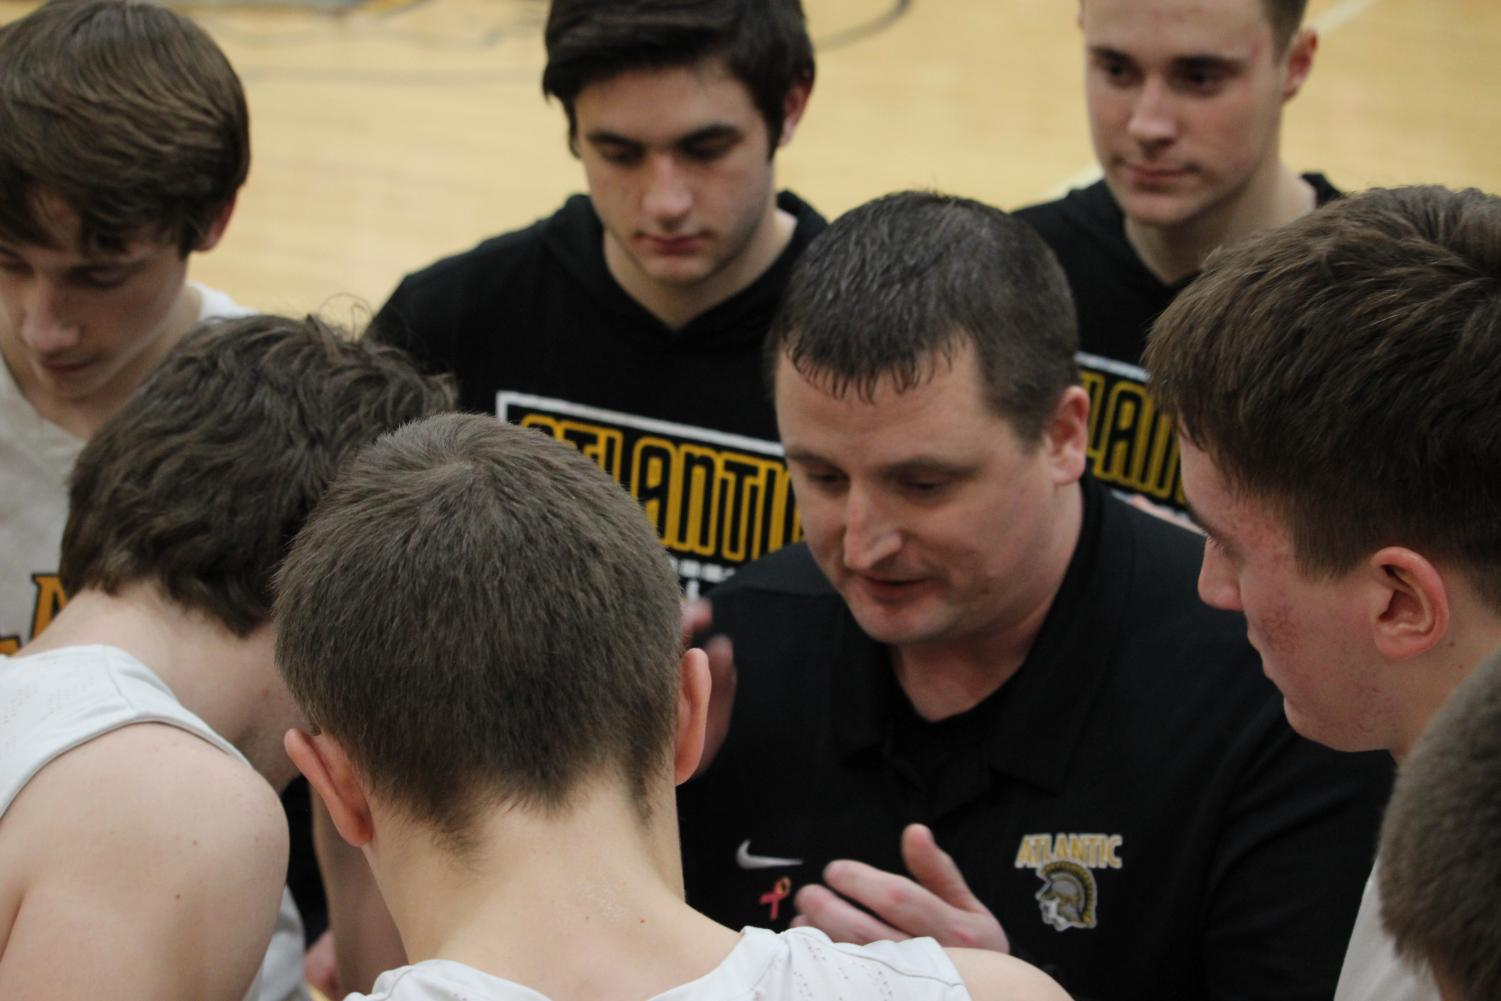 Atlantic head boys' basketball coach Jeff Ebling breaks down a play during a timeout. The regular season ends for the Trojan boys on Thursday, as they play Denison-Schleswig at home.